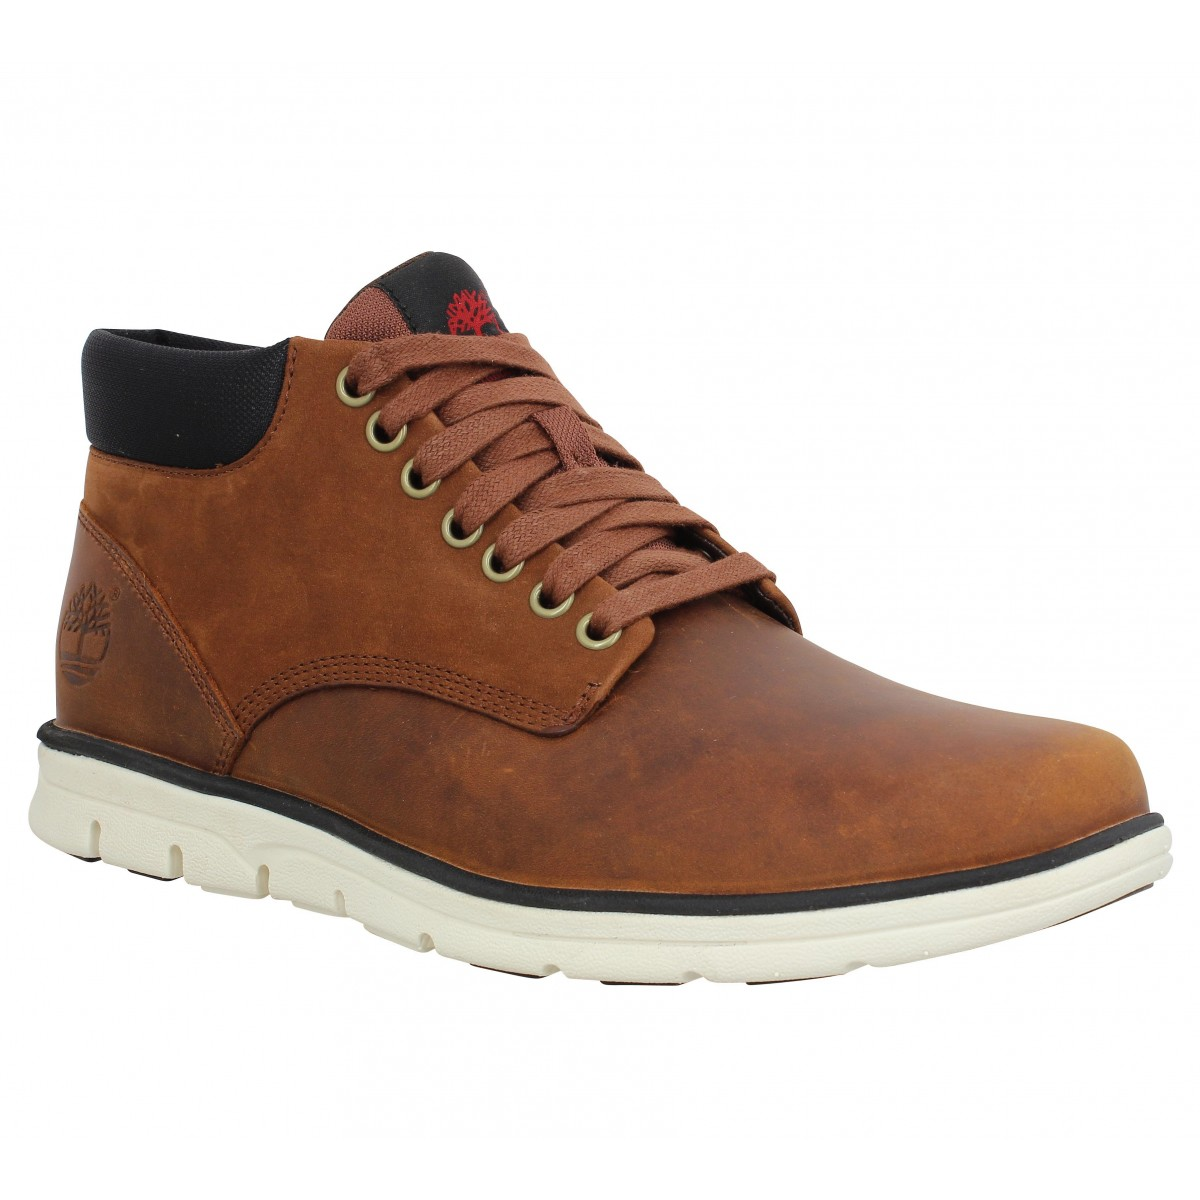 chaussure homme timberland marron